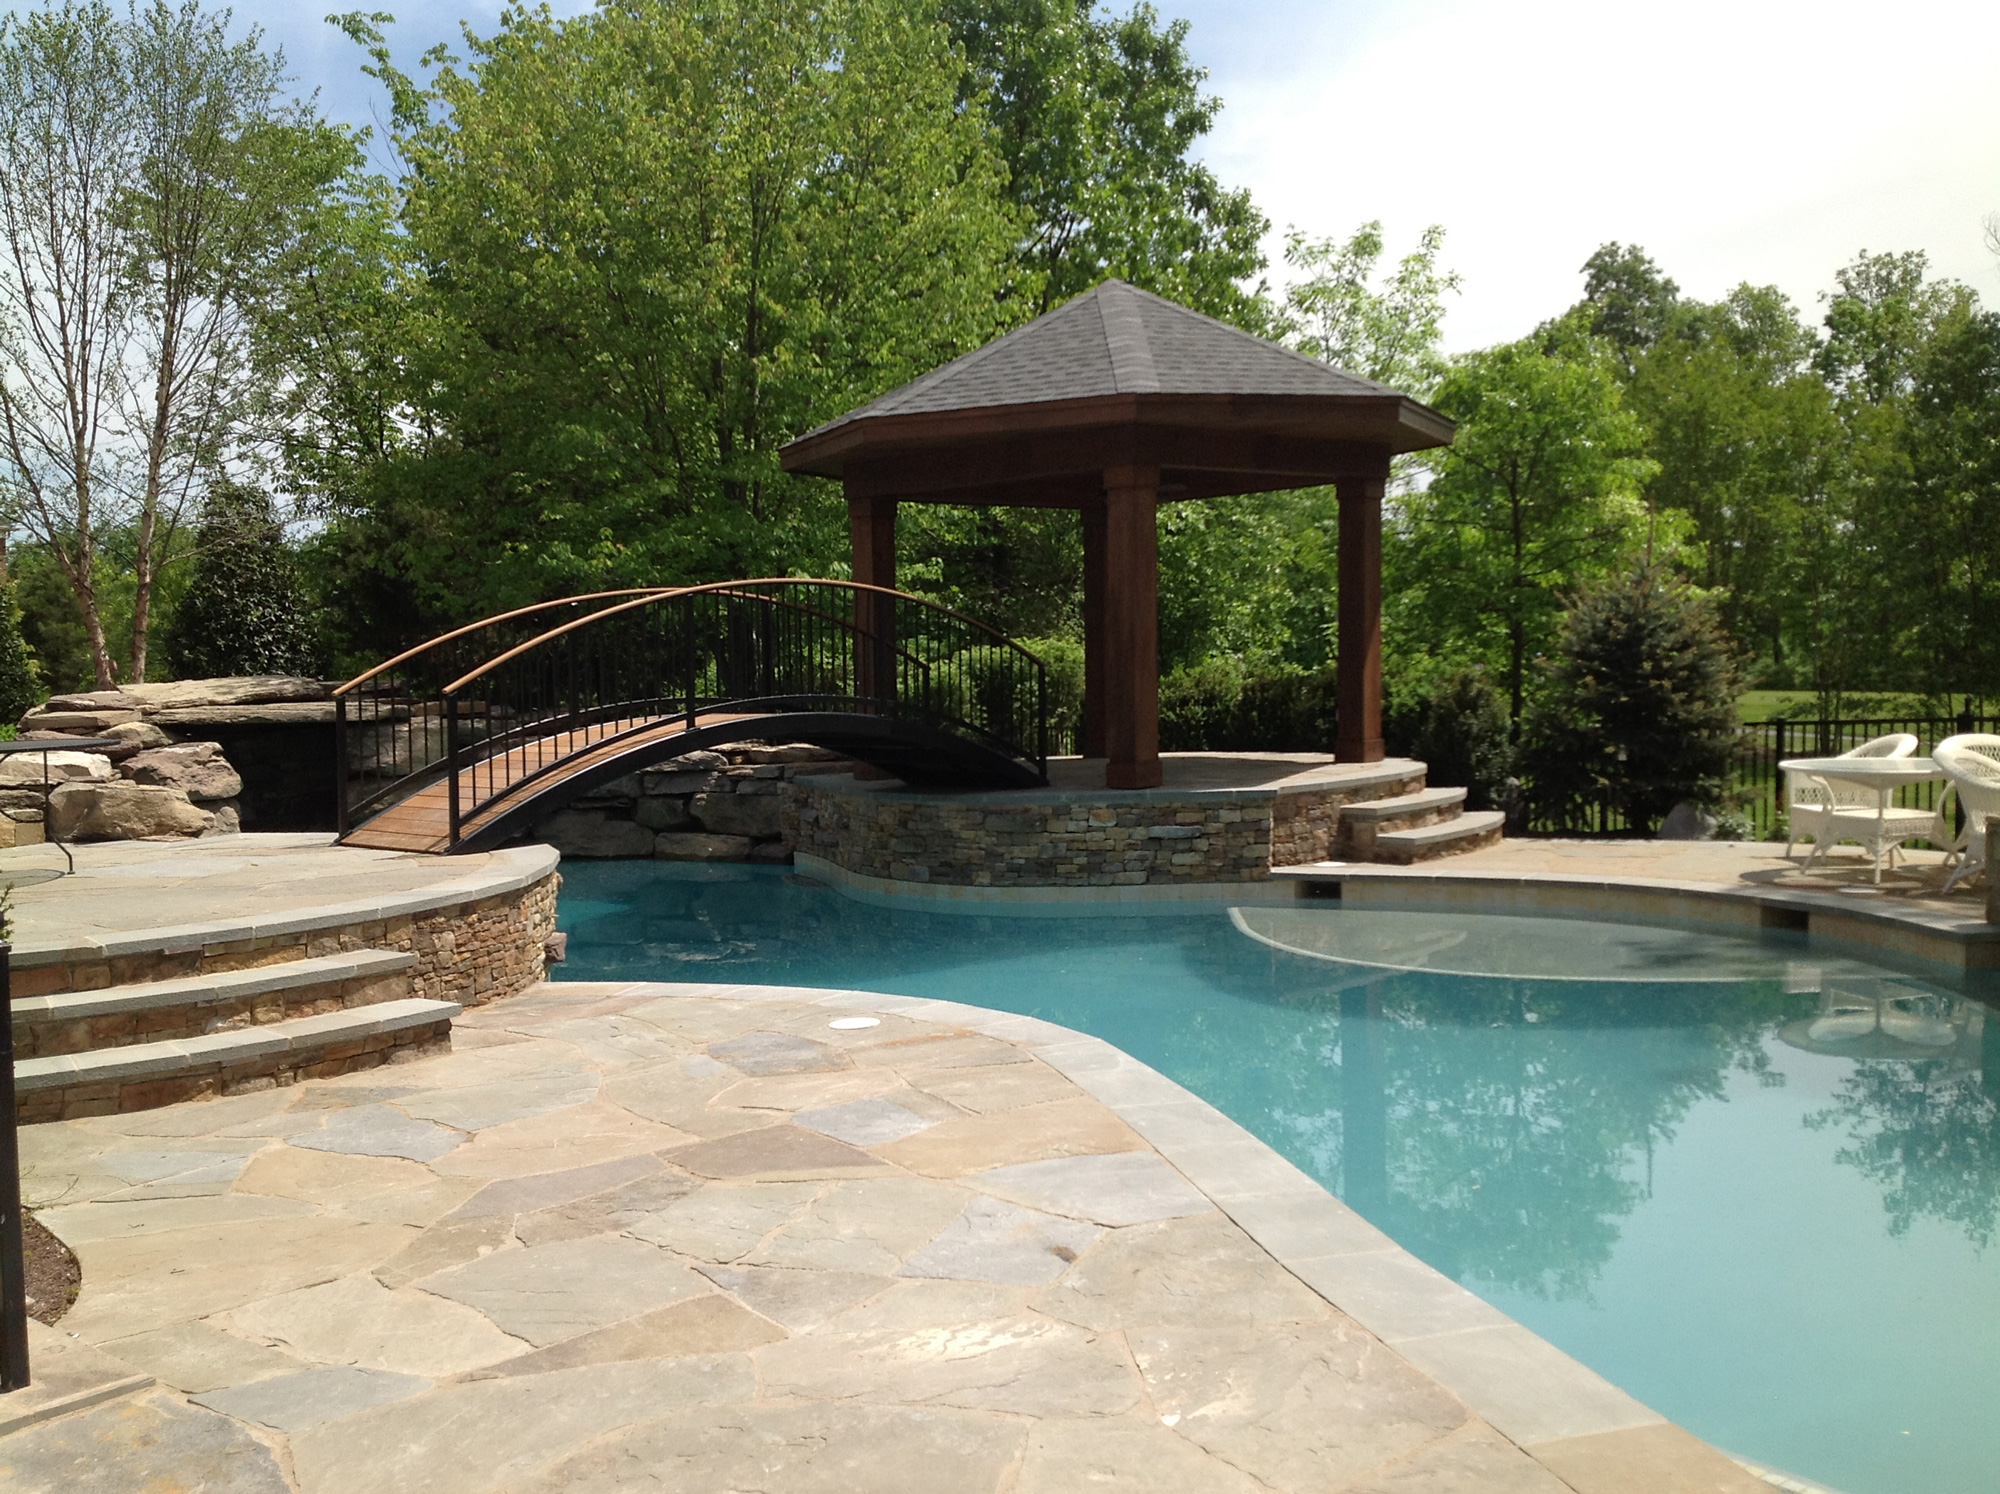 Landscaping advice m m professional landscaping for Pool design virginia